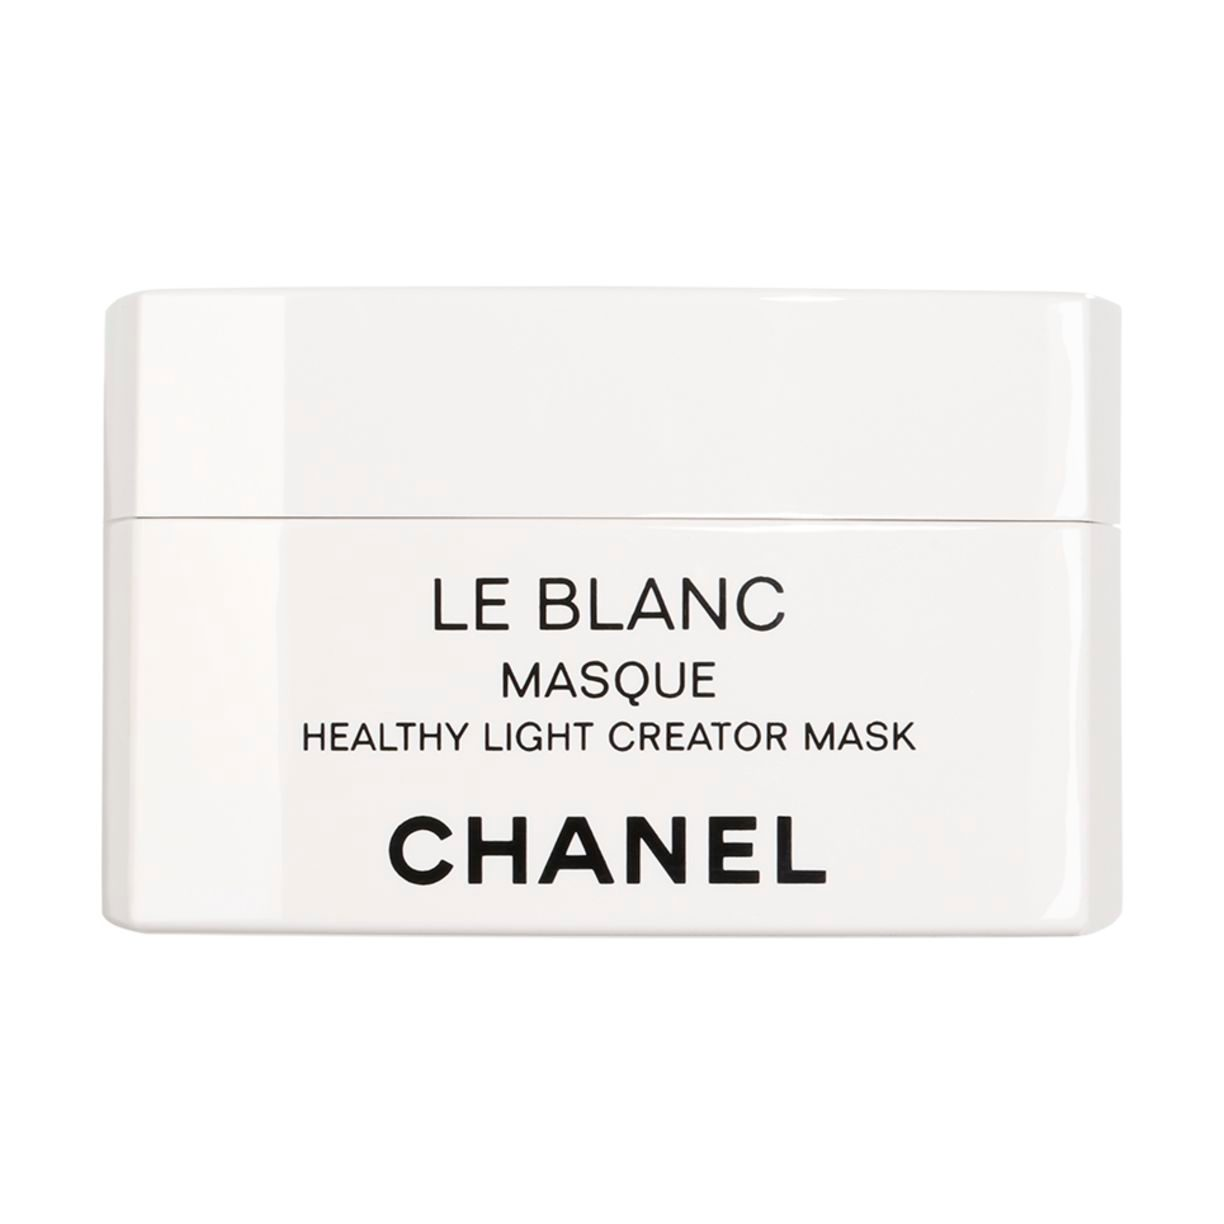 LE BLANC MASQUE HEALTHY LIGHT CREATOR MASK REVITALIZANTE - ILUMINADORA - REPARADORA 50g